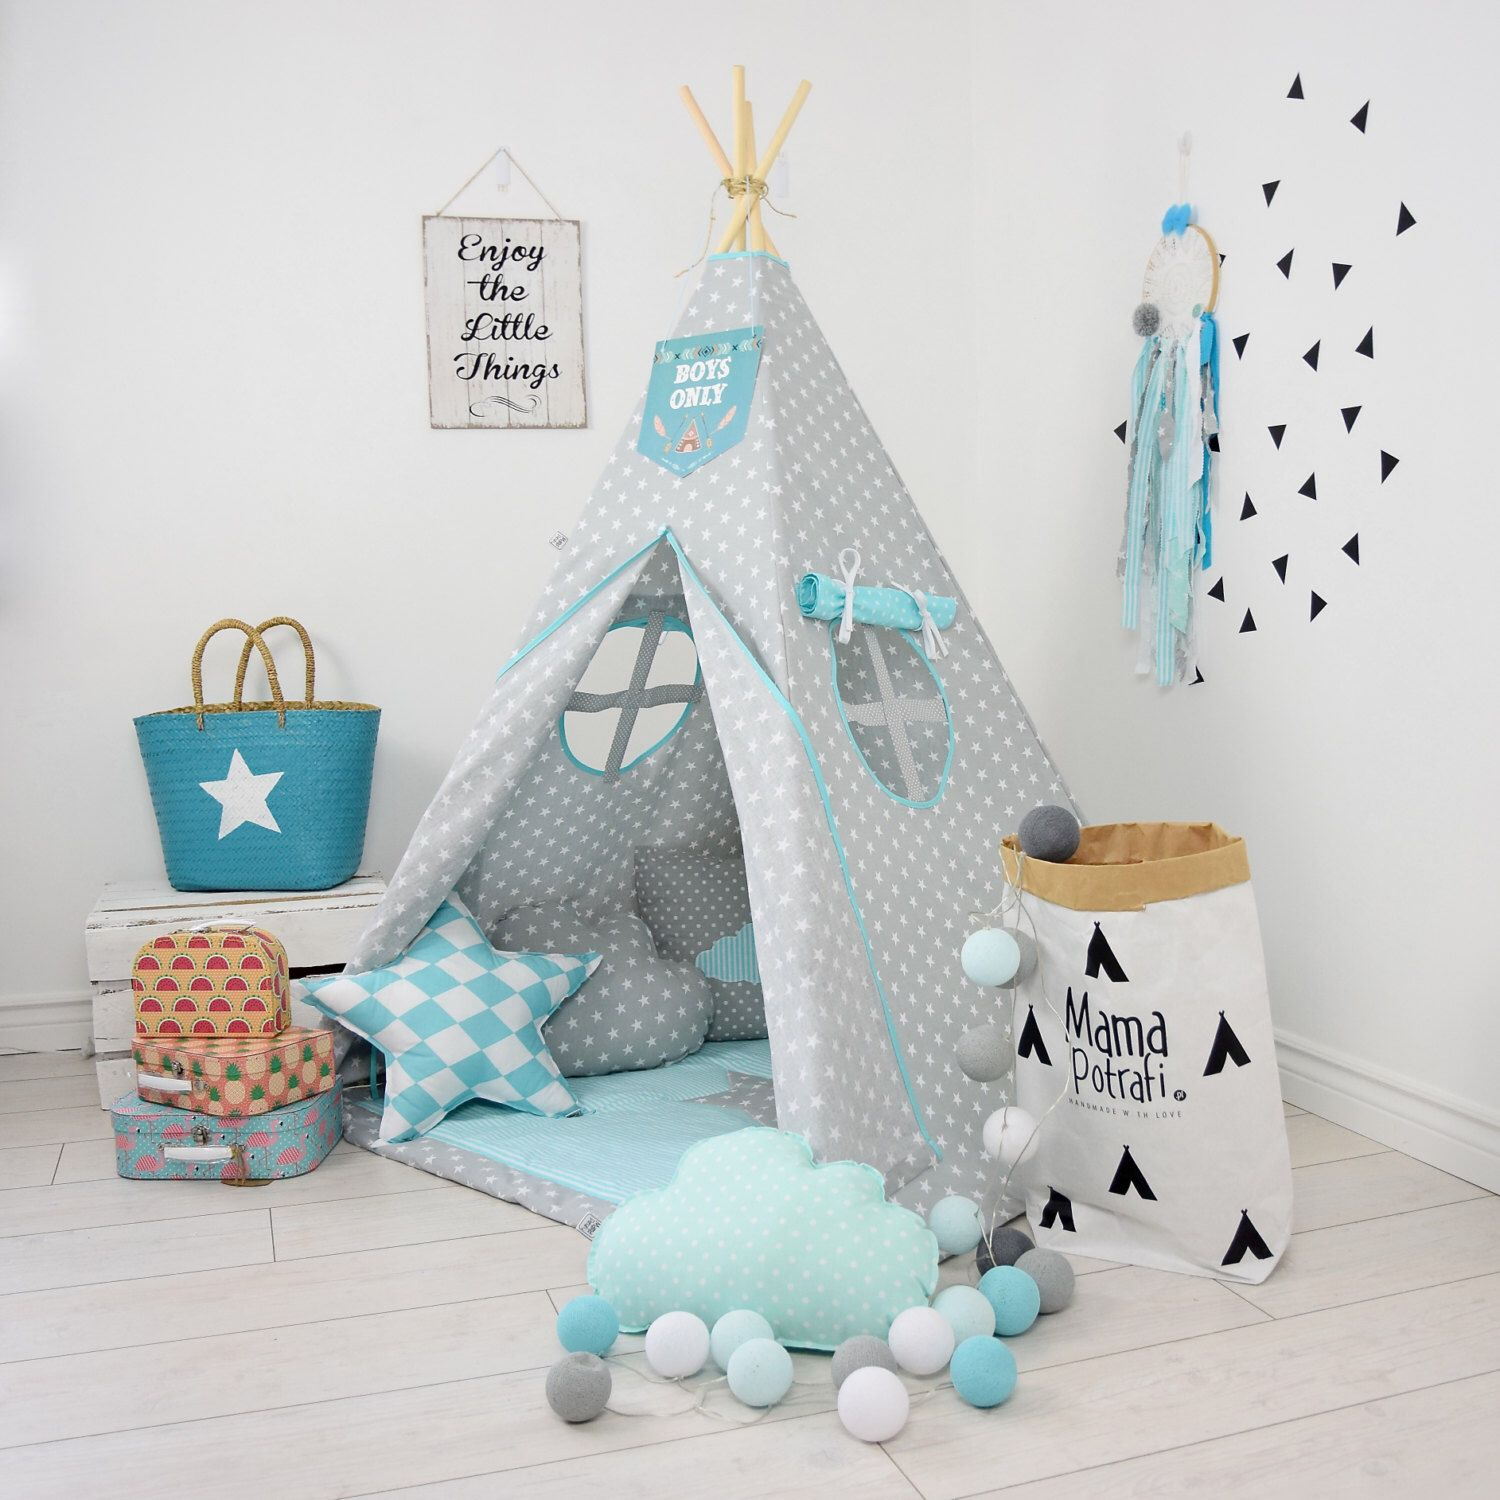 Childrens teepee playtent tipi zelt wigwam kids by MamaPotrafi  sc 1 st  Pinterest & Childrens teepee playtent tipi zelt wigwam kids teepee tent ...